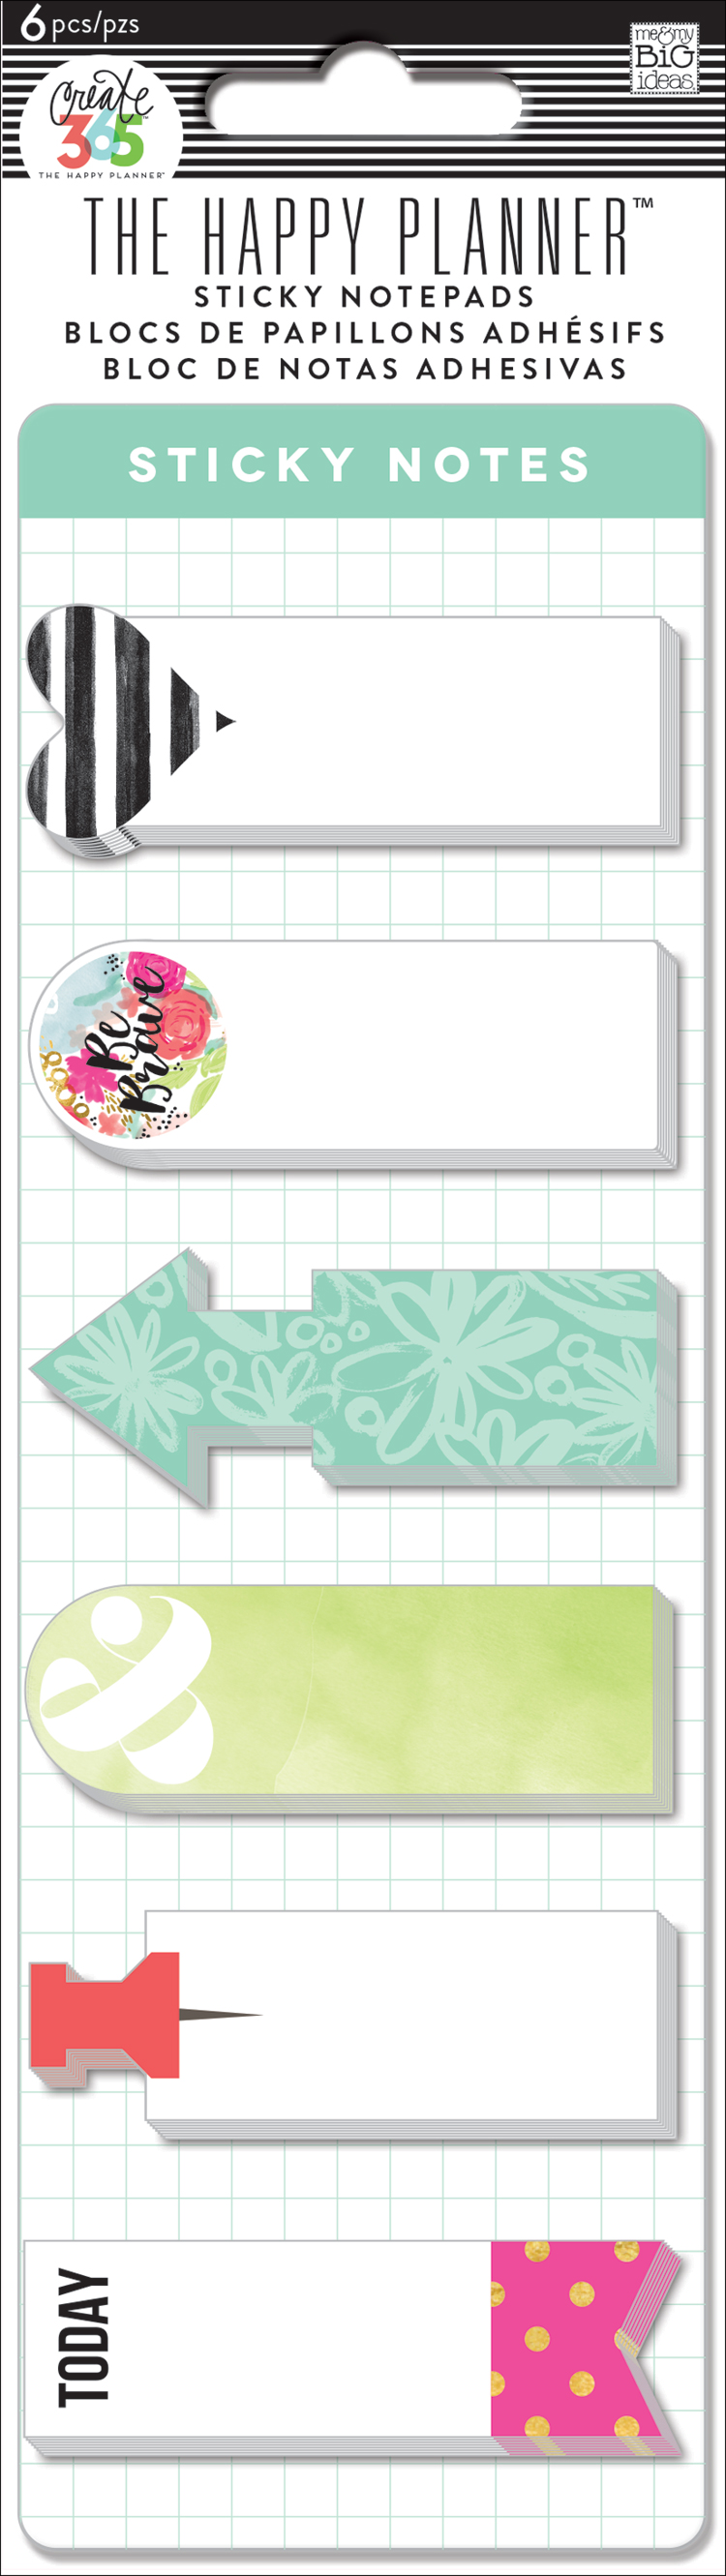 'Be Brave' long thing Sticky Notes for The Happy Planner™ | me & my BIG ideas.jpg